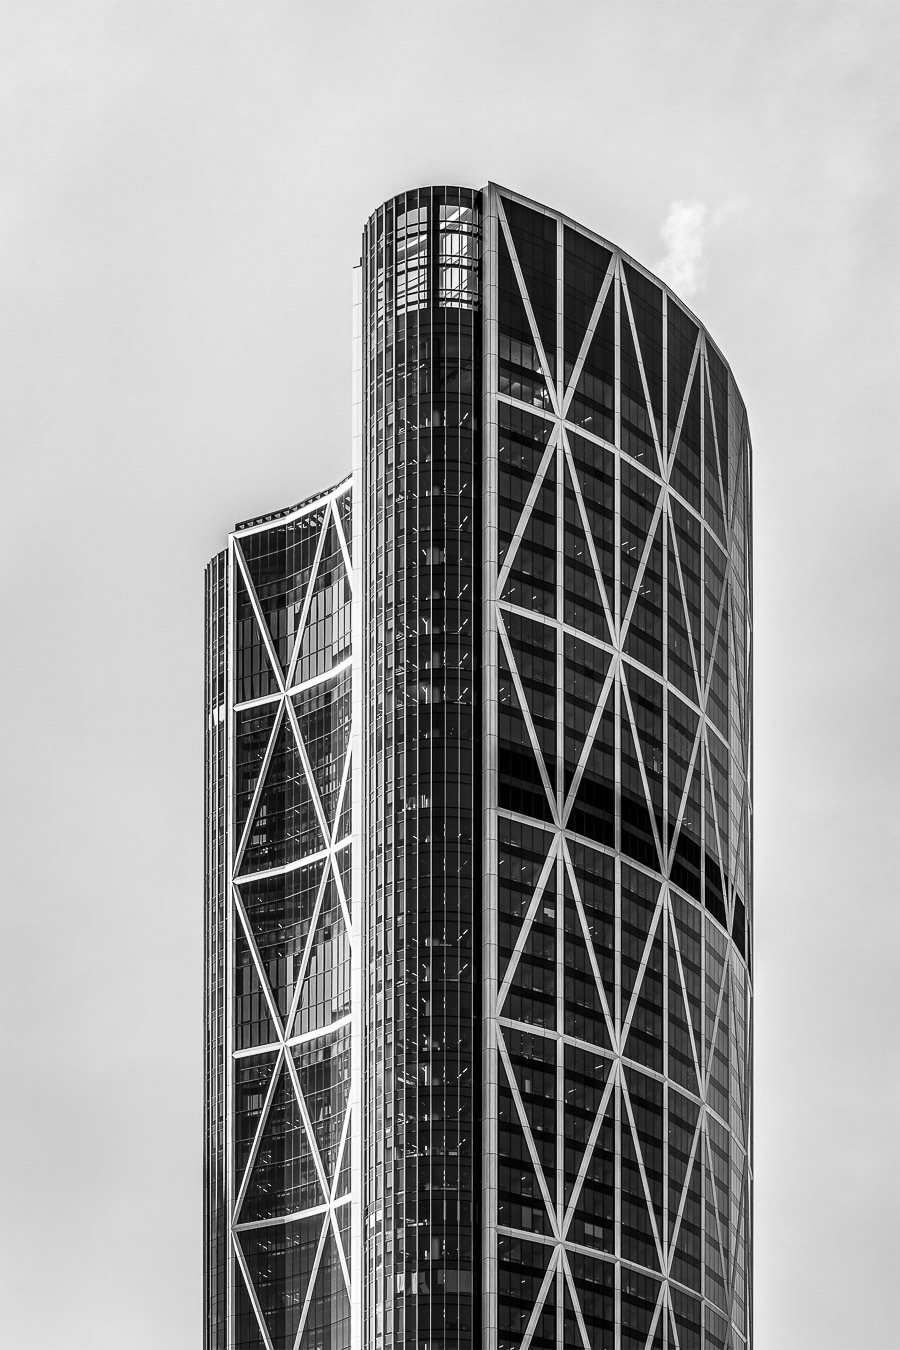 047-Foster Partners Calgary Bow Tower-Edit